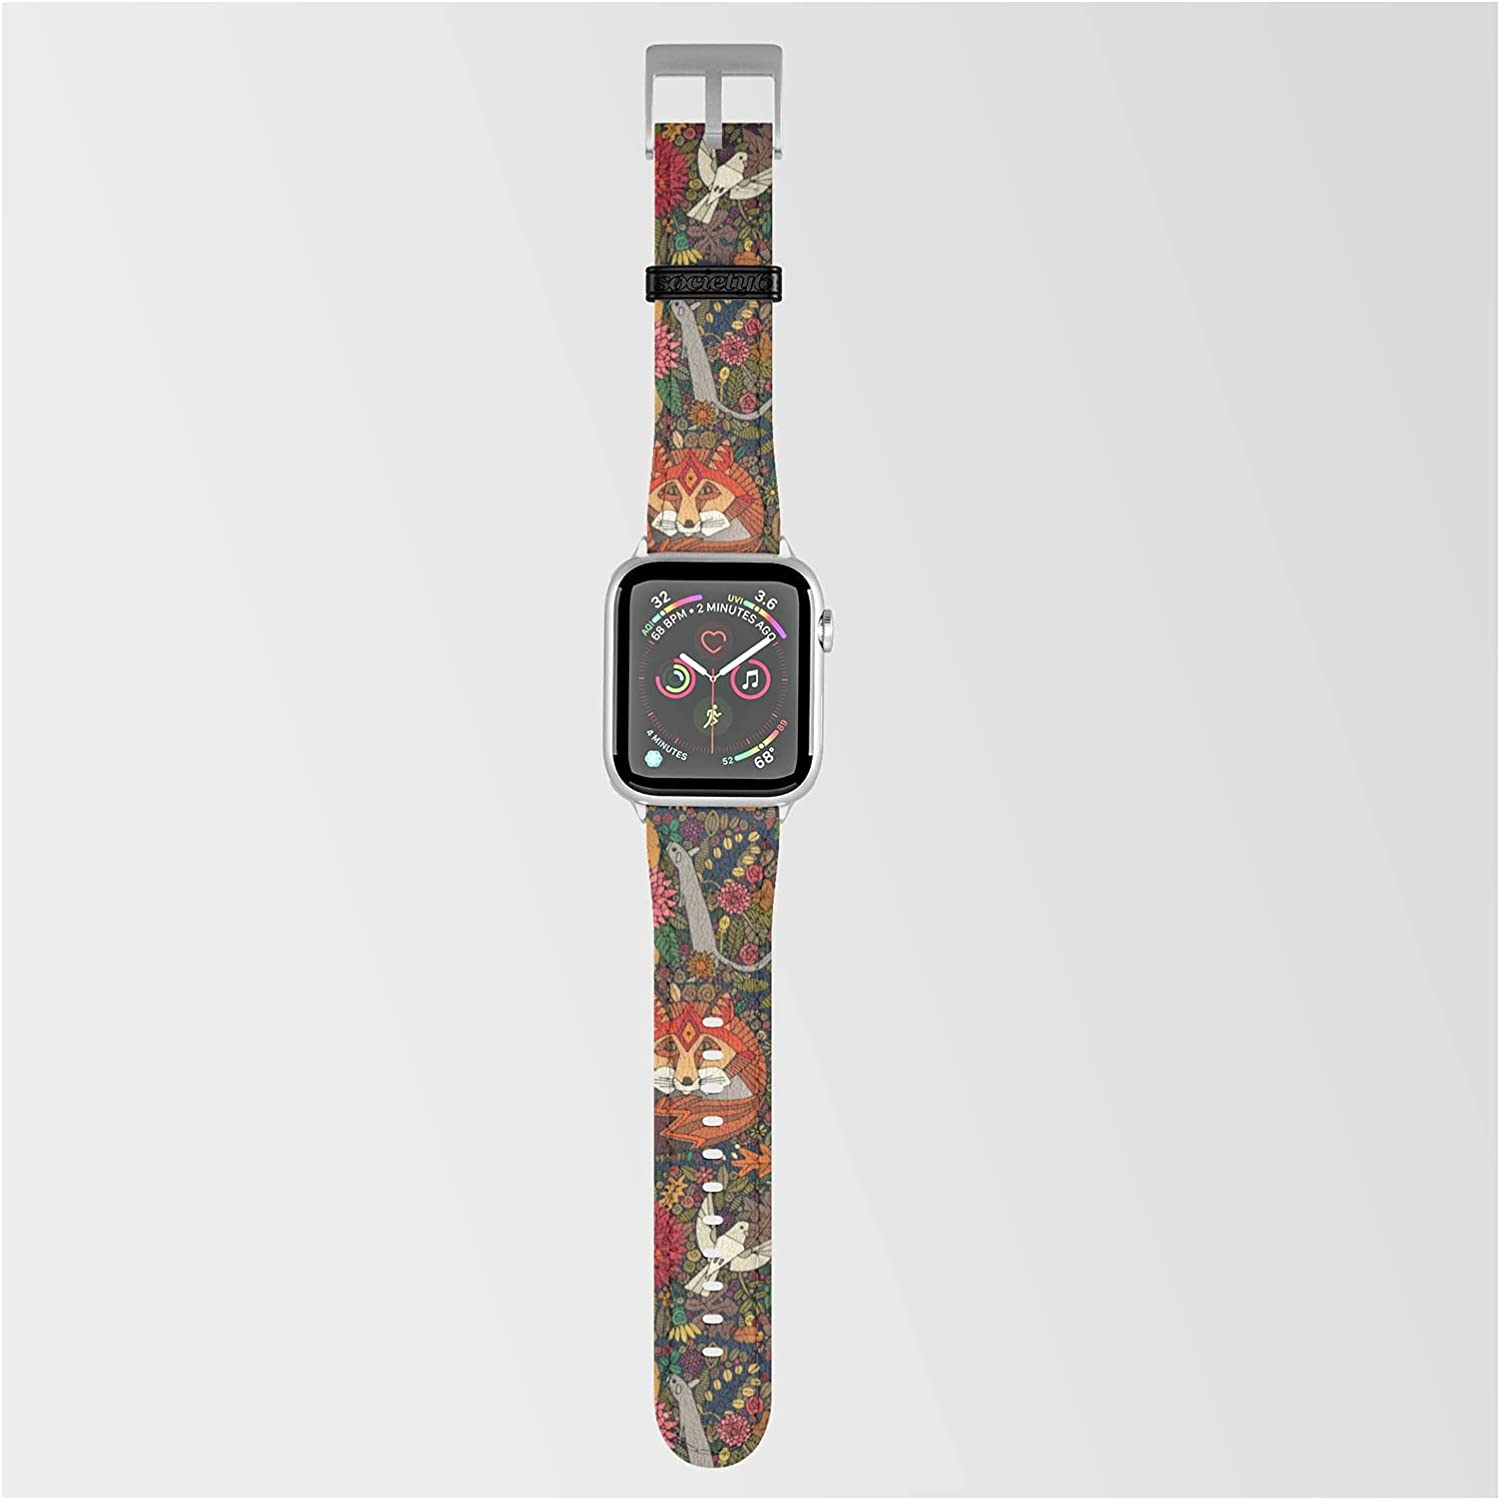 Fox Garden by Sharon Turner on with Max 67% OFF Band Compatible New popularity A Smartwatch